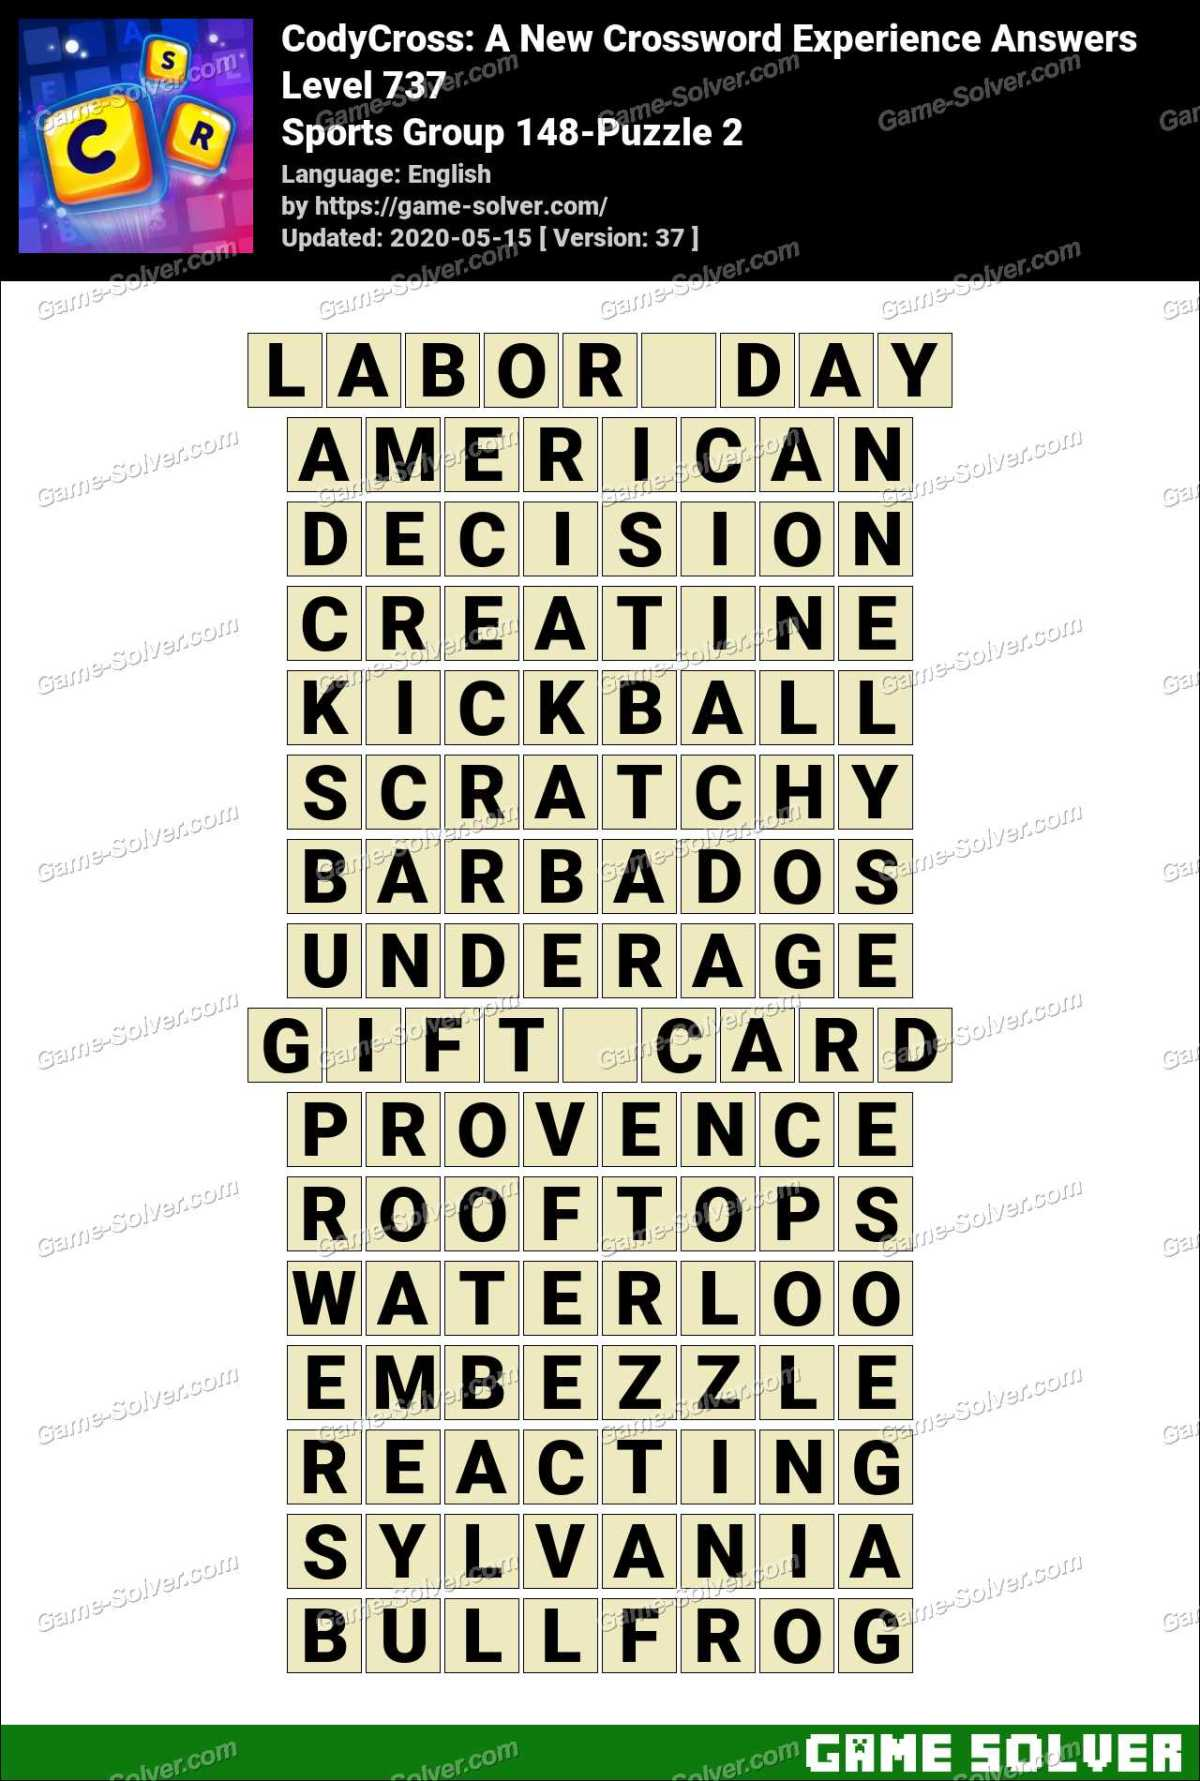 CodyCross Sports Group 148-Puzzle 2 Answers